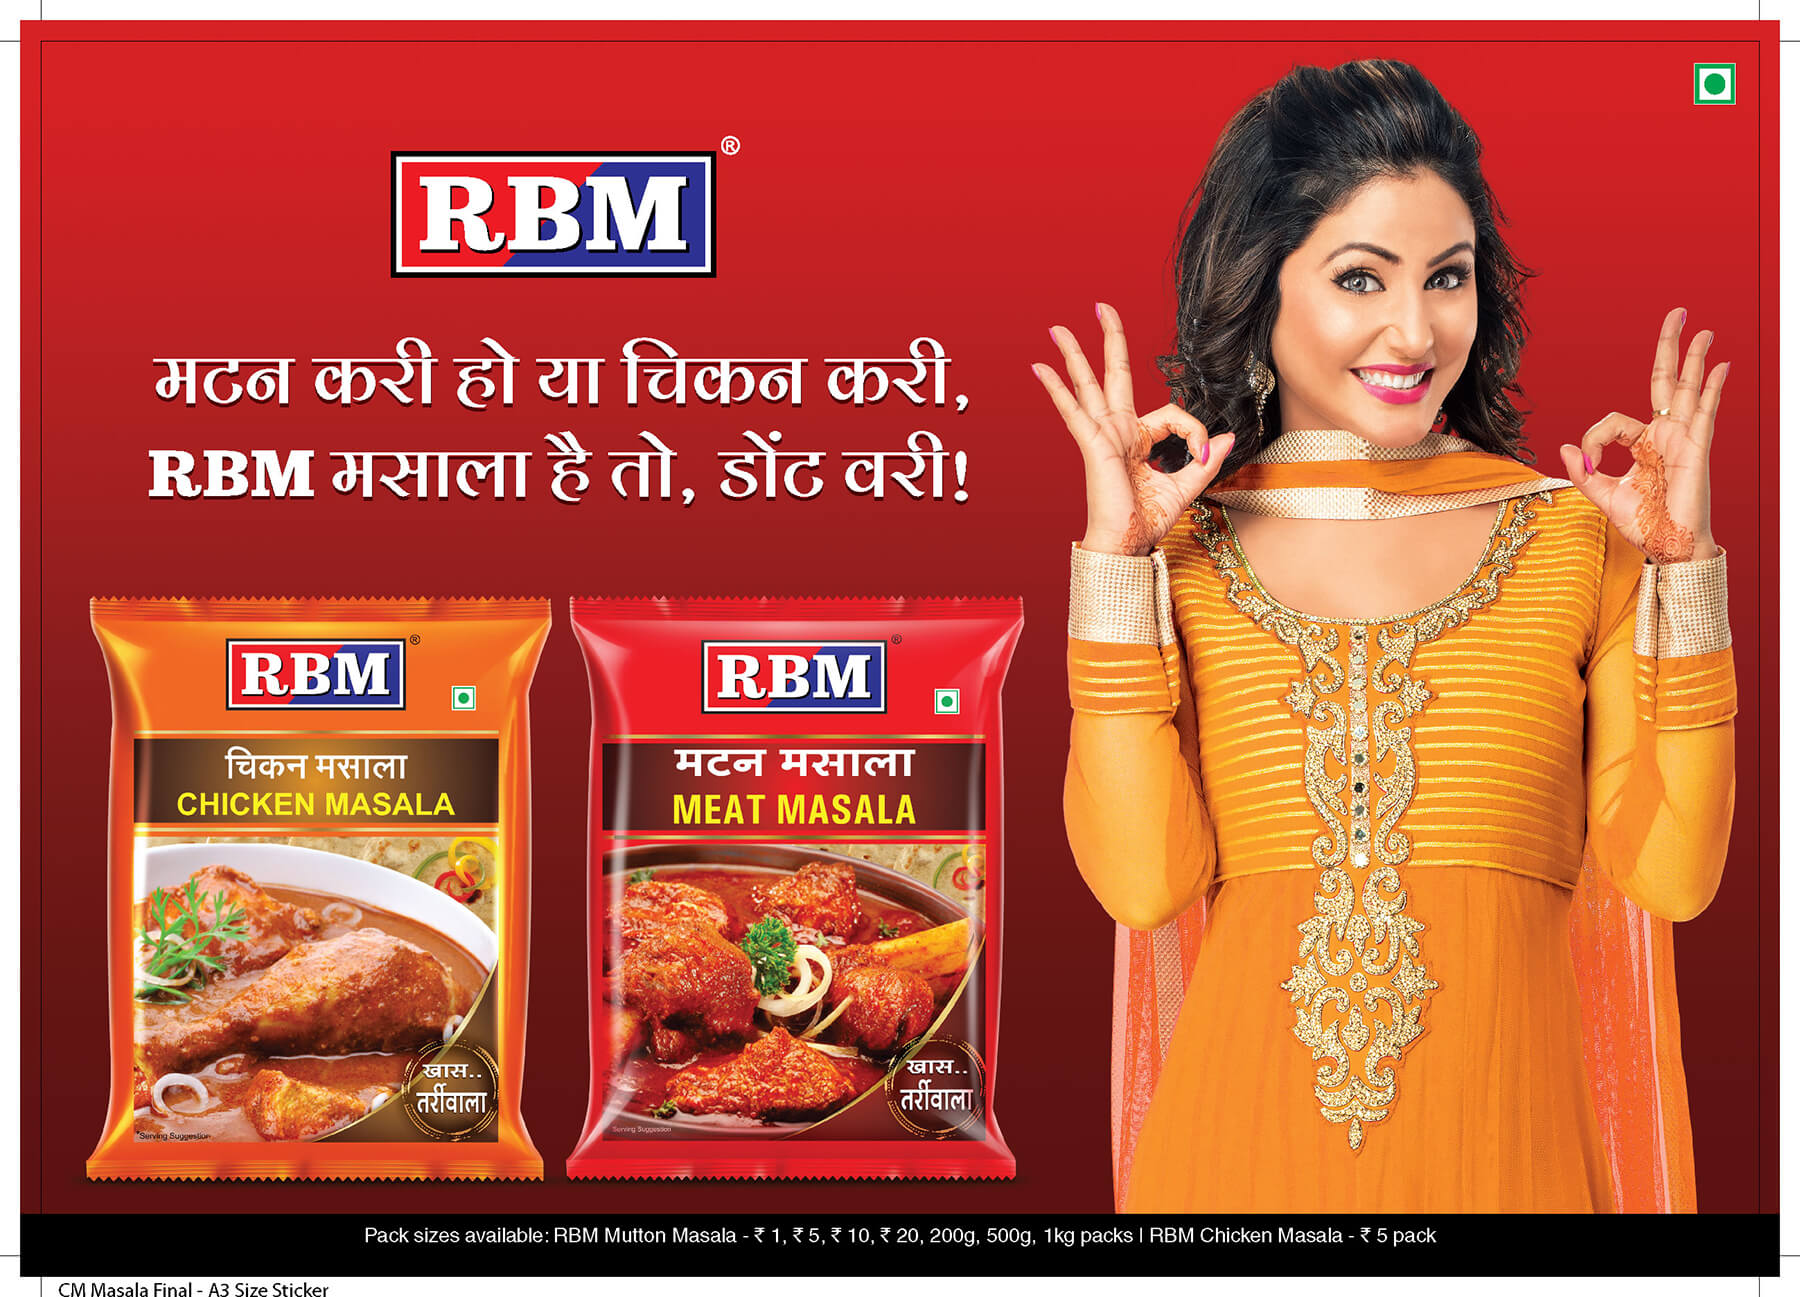 Chicken & Meat Masala Campaign